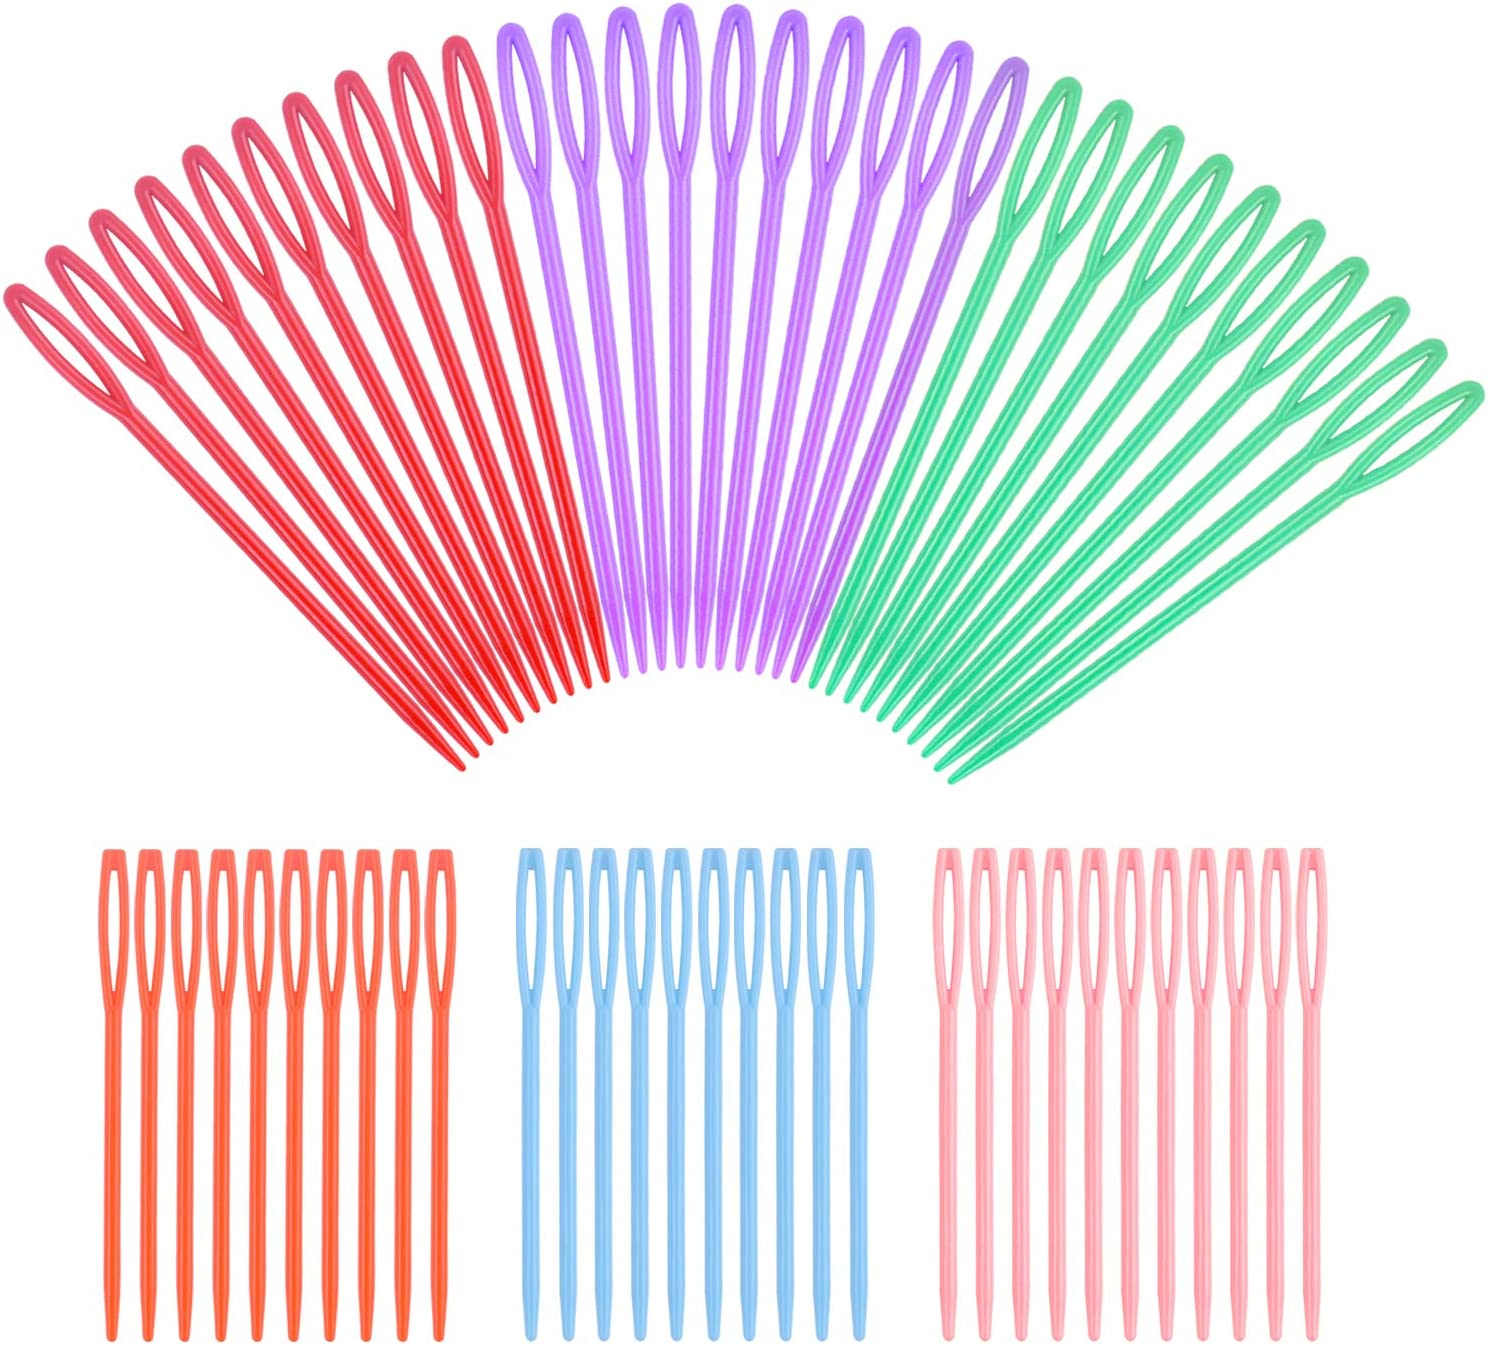 3.54 inches and 2.75 inches 60 Pieces Colorful Large Eye Plastic Sewing Needles ,Safety Plastic Lacing Needles for Crafts